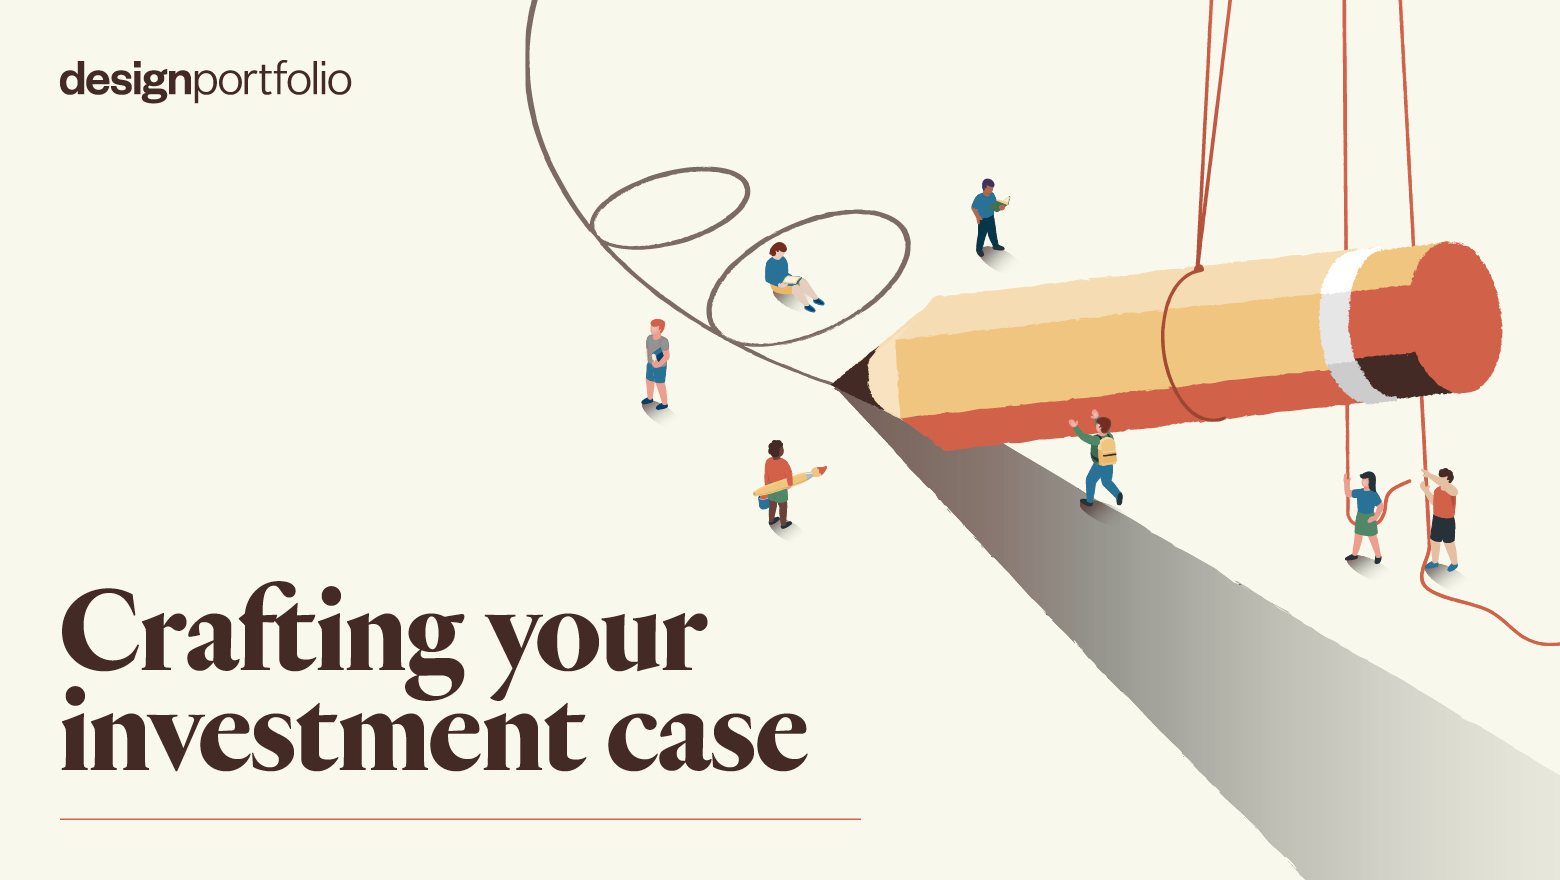 Read our whitepaper: Crafting your investment case - an updated guide to investment case reporting across FTSE 350 & AIM 50